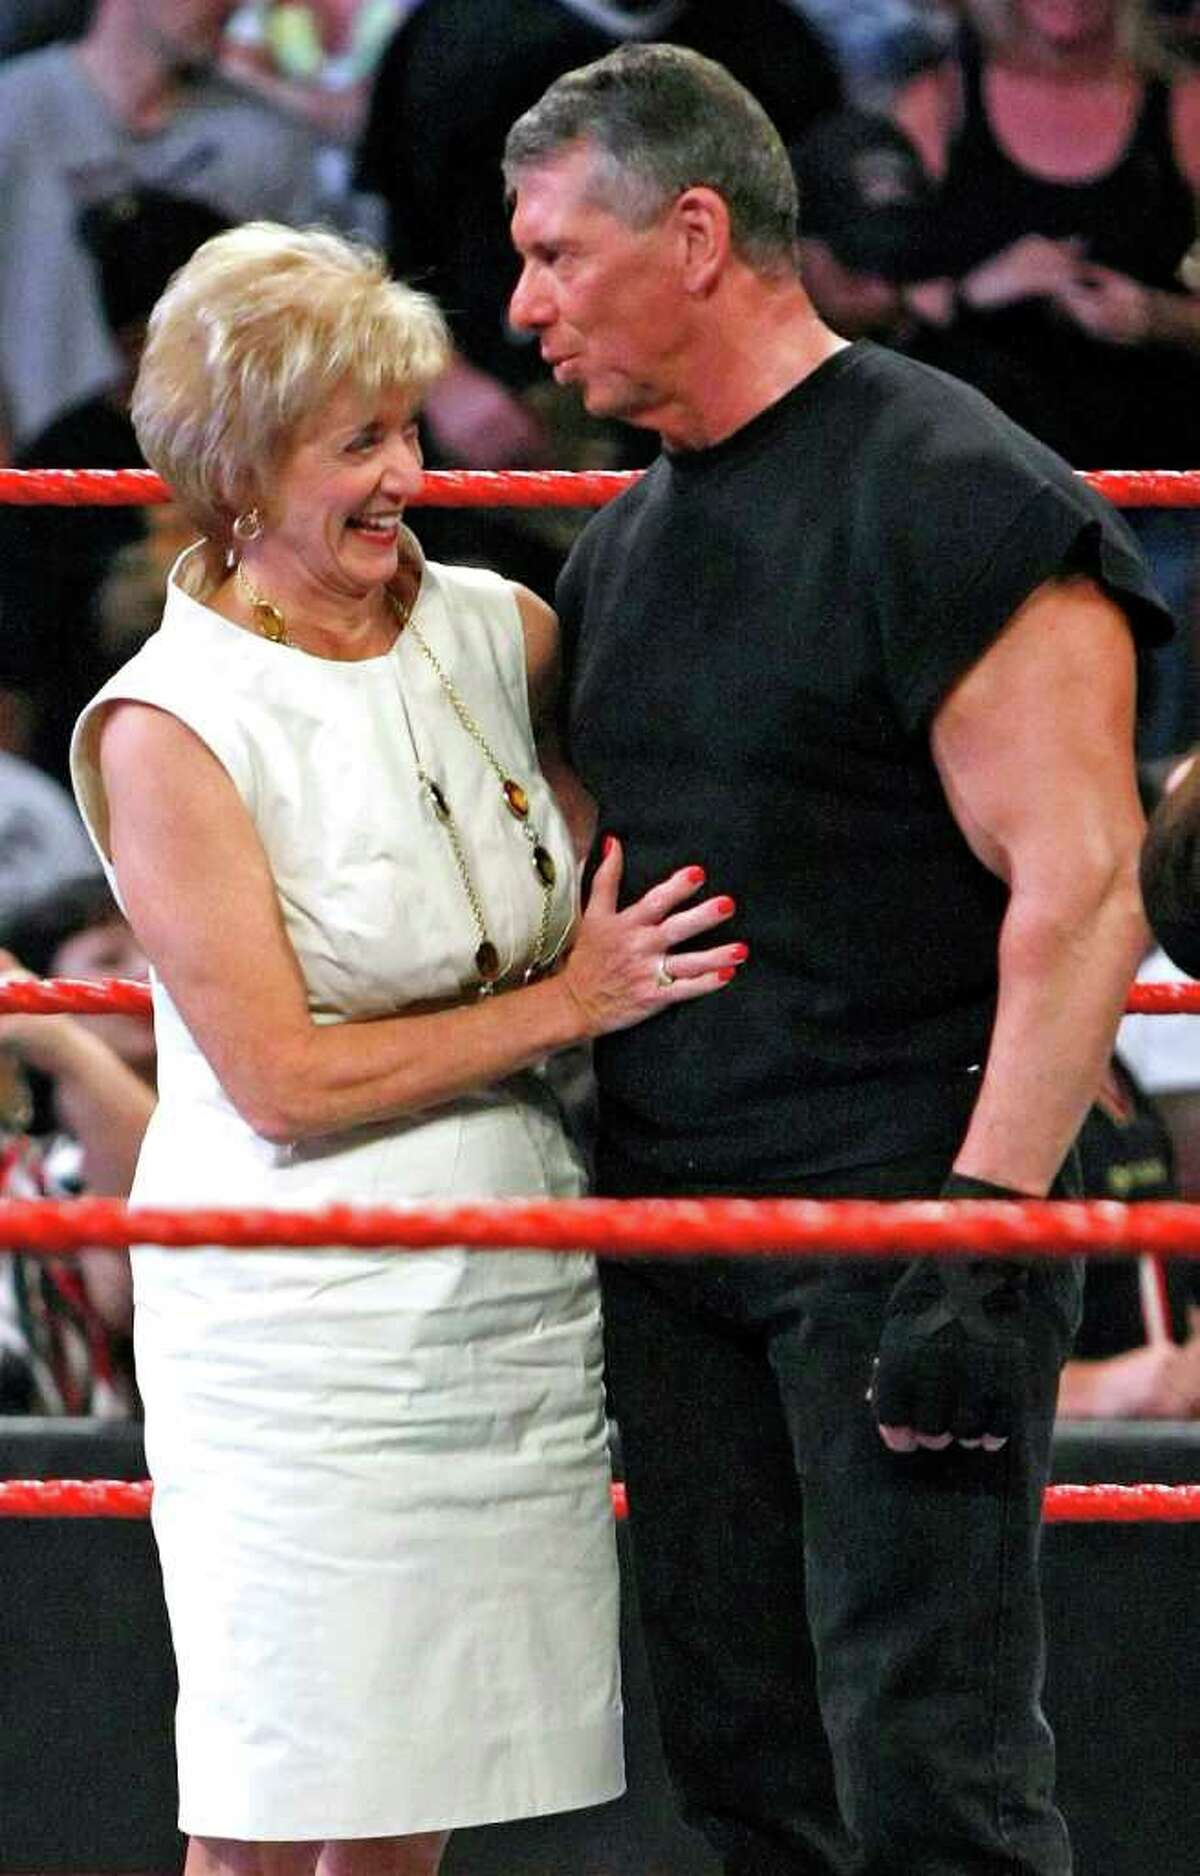 Former World Wrestling Entertainment Inc. CEO Linda McMahon and her husband, Vince McMahon, appear in the ring during Vince McMahon's 64th birthday celebration at the WWE Monday Night Raw show in Las Vegas, Nev. in 2009.